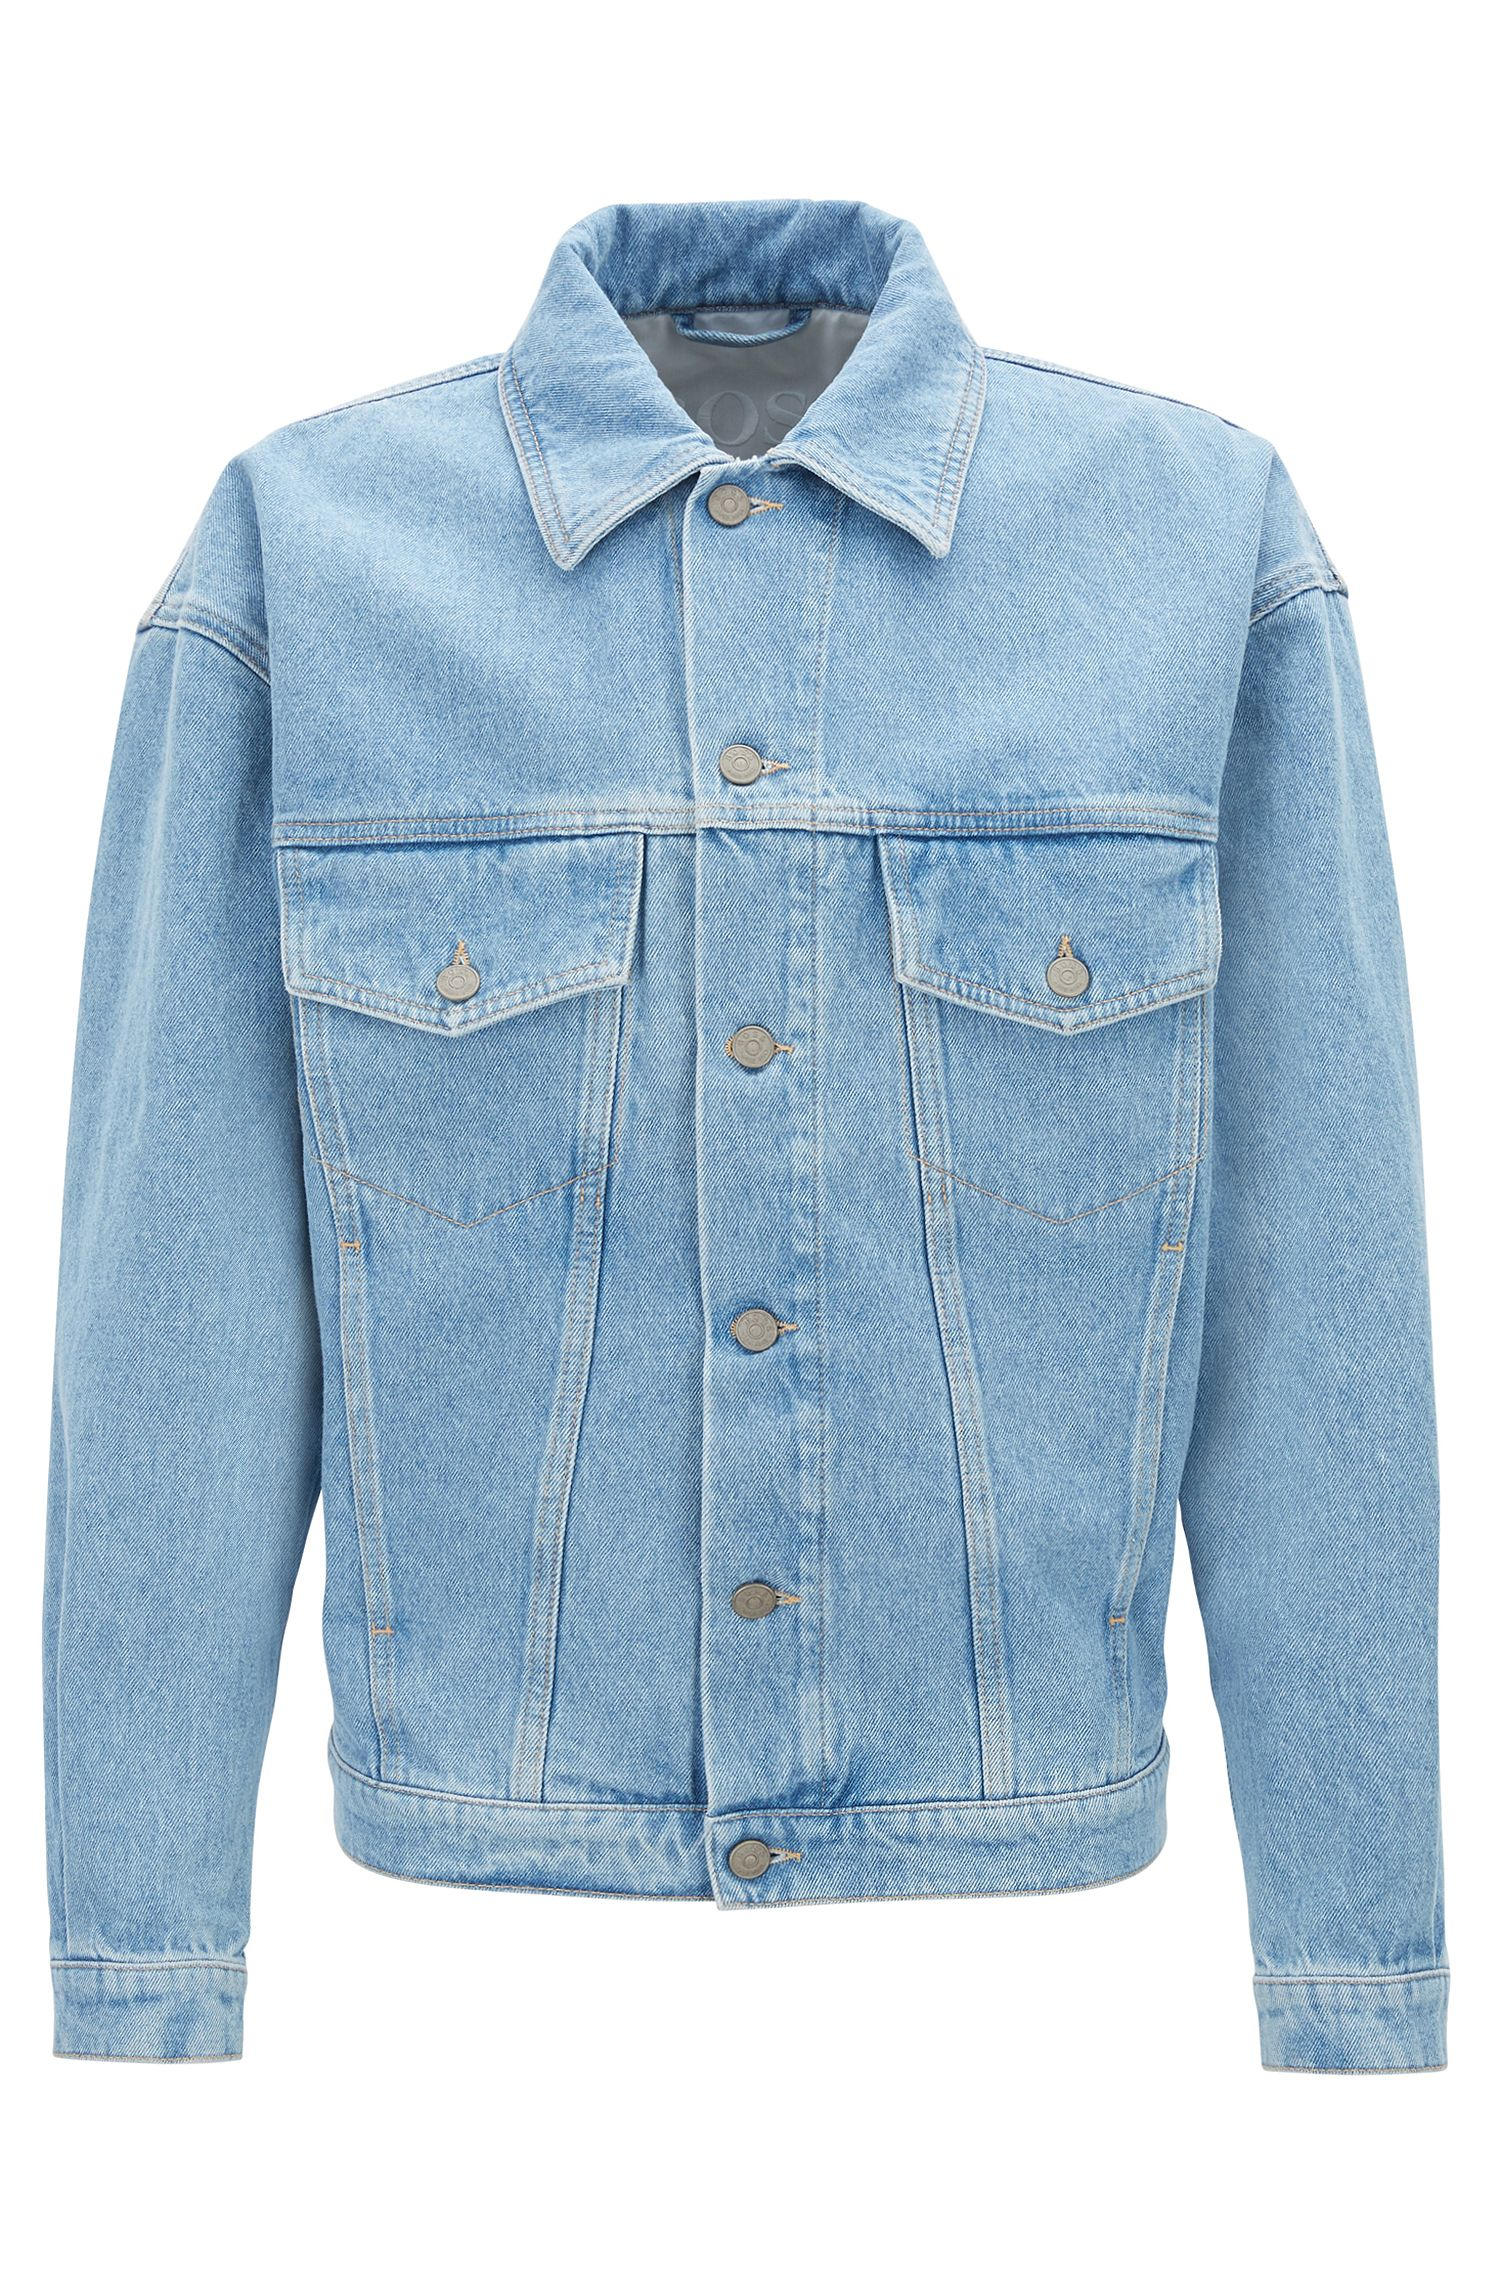 Relaxed-fit truckerjack van felblauw, robuust denim